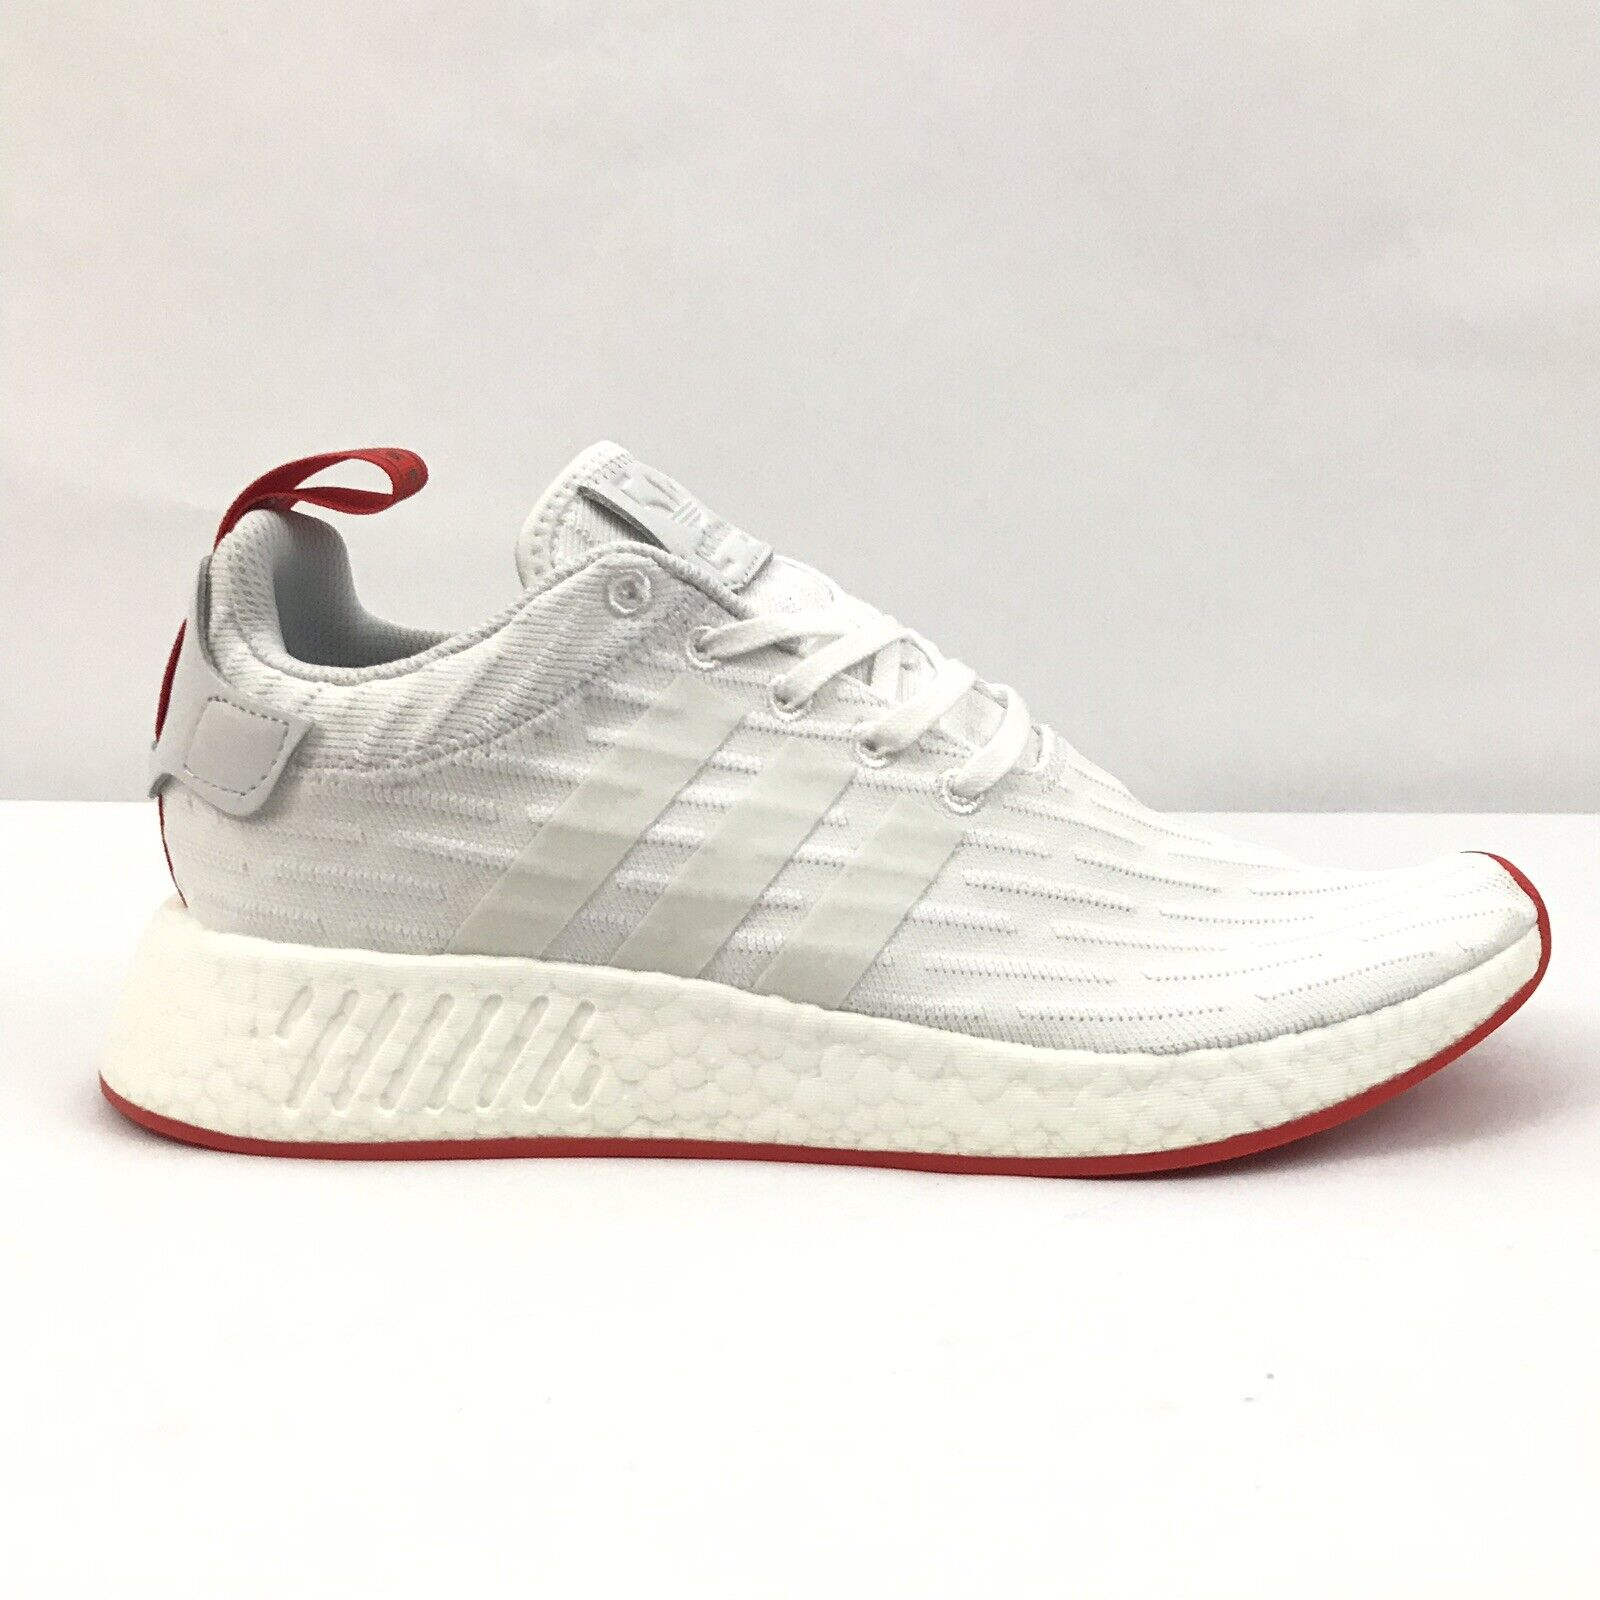 best service ae788 80d9f Adidas NMD R2 Primeknit PK White Core Red BA7253 Mens Two Toned Size 10.  Adidas Porsche 911 2.0L TEX Casual shoes Mens Sneakers Trainers S76121